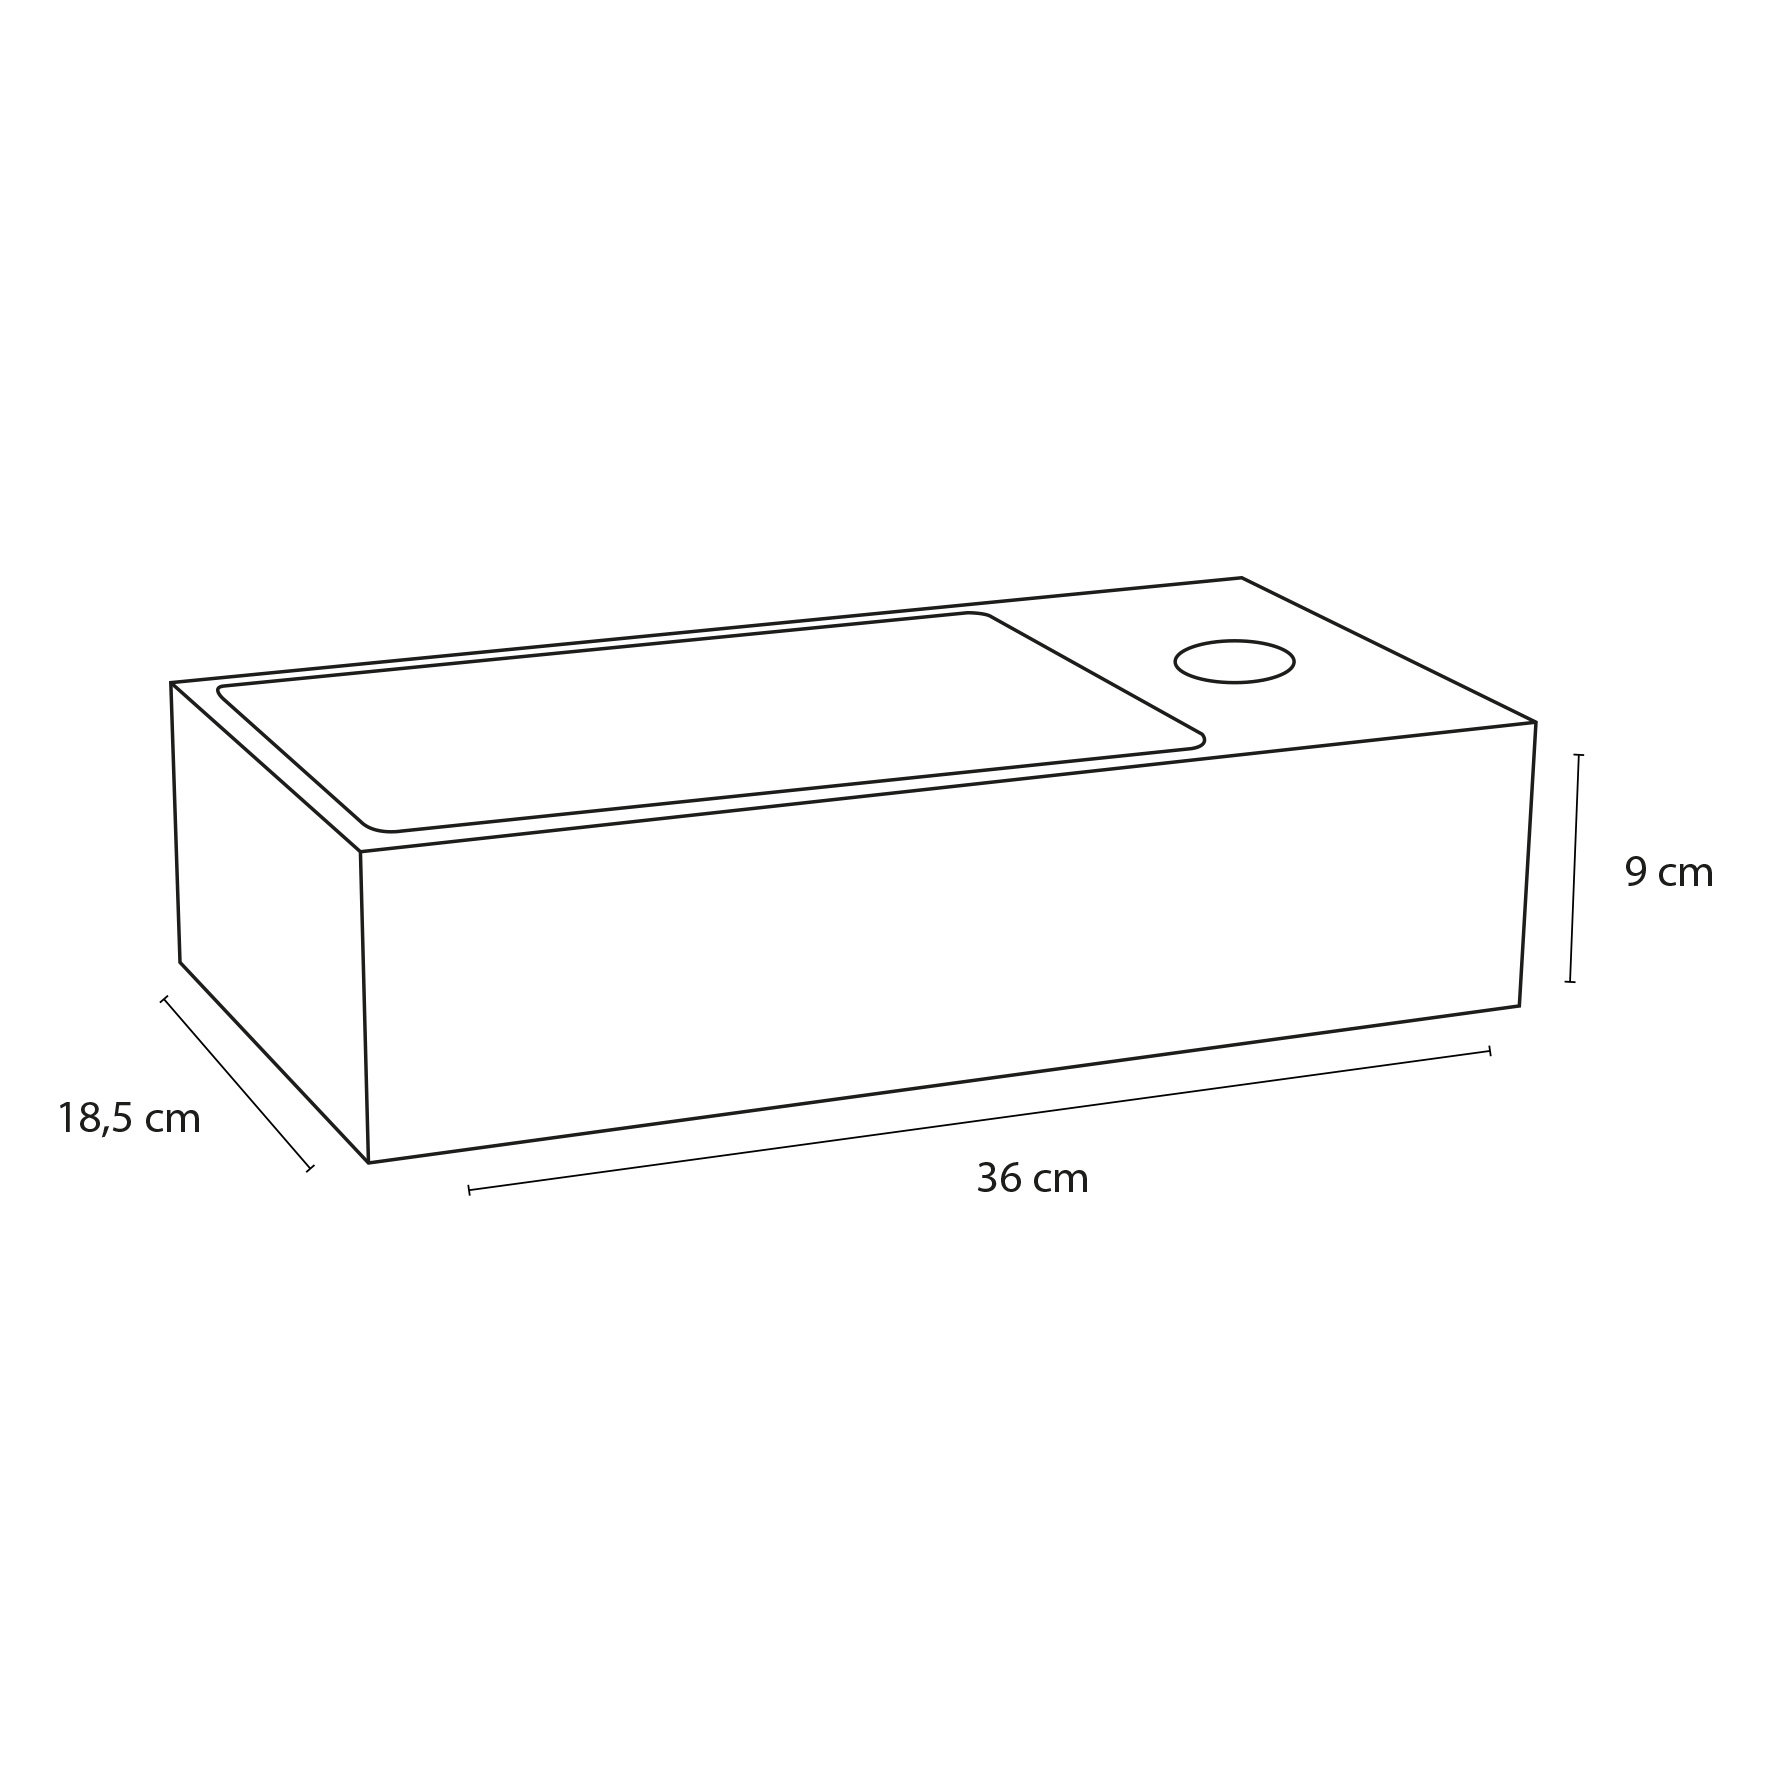 Solid fontein – Solid surface 18,5 x 36 x 9 cm-3